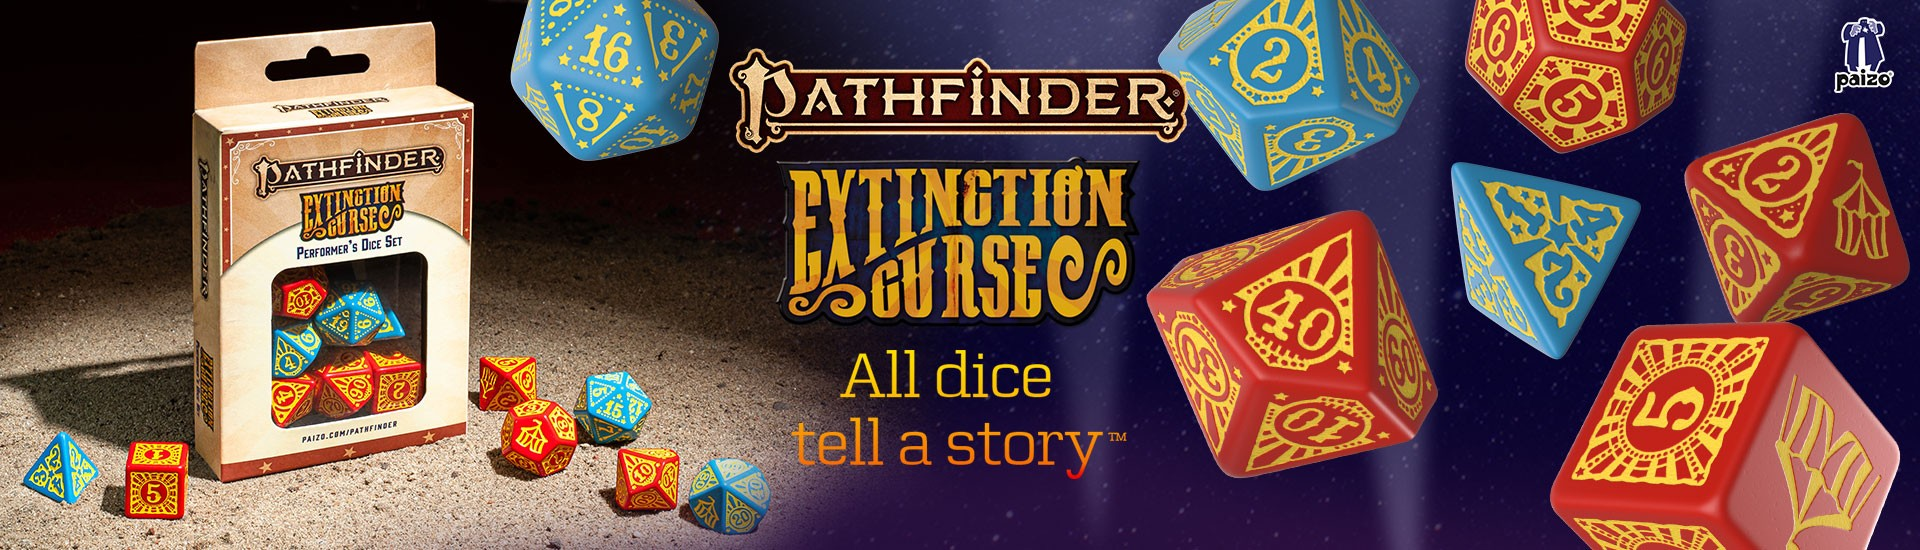 Pathfinder Extintion Curse